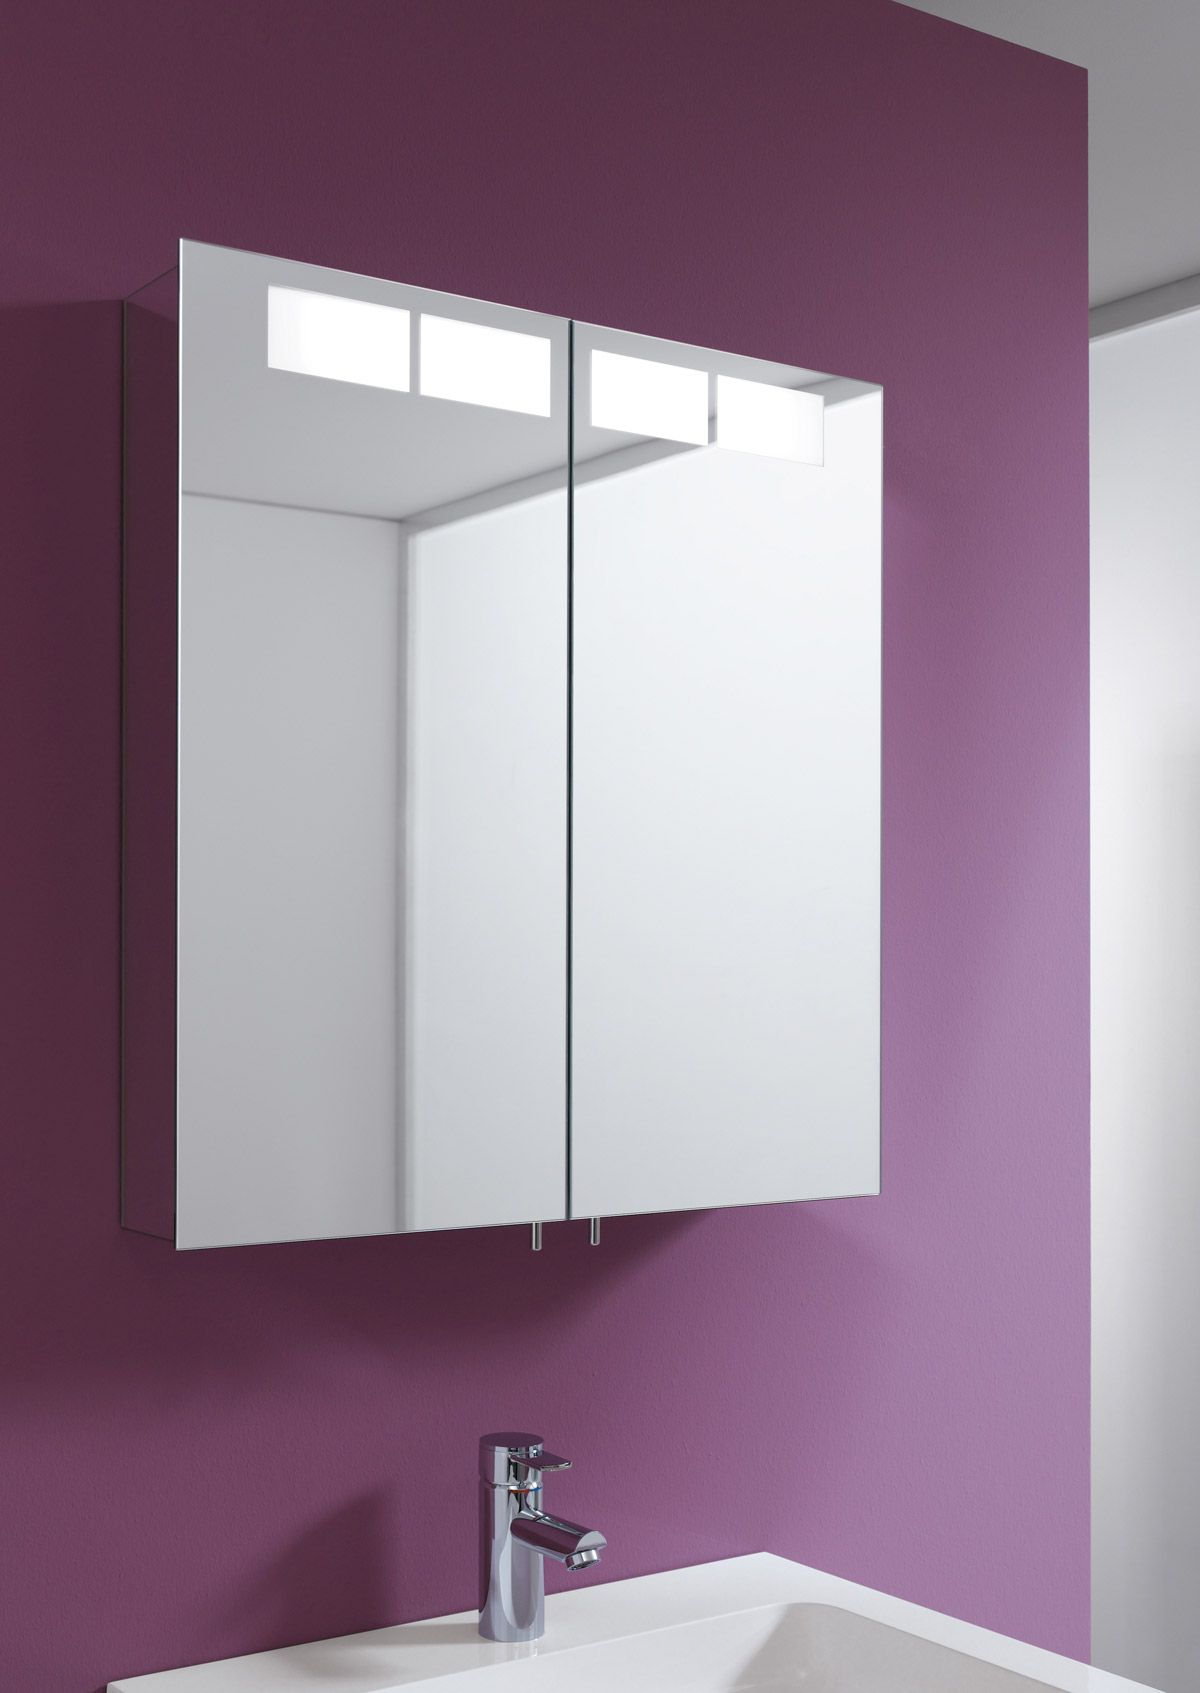 Bathroom Cabinets Keuco keuco royal t1 2 door mirror cabinet | keuco | pinterest | door